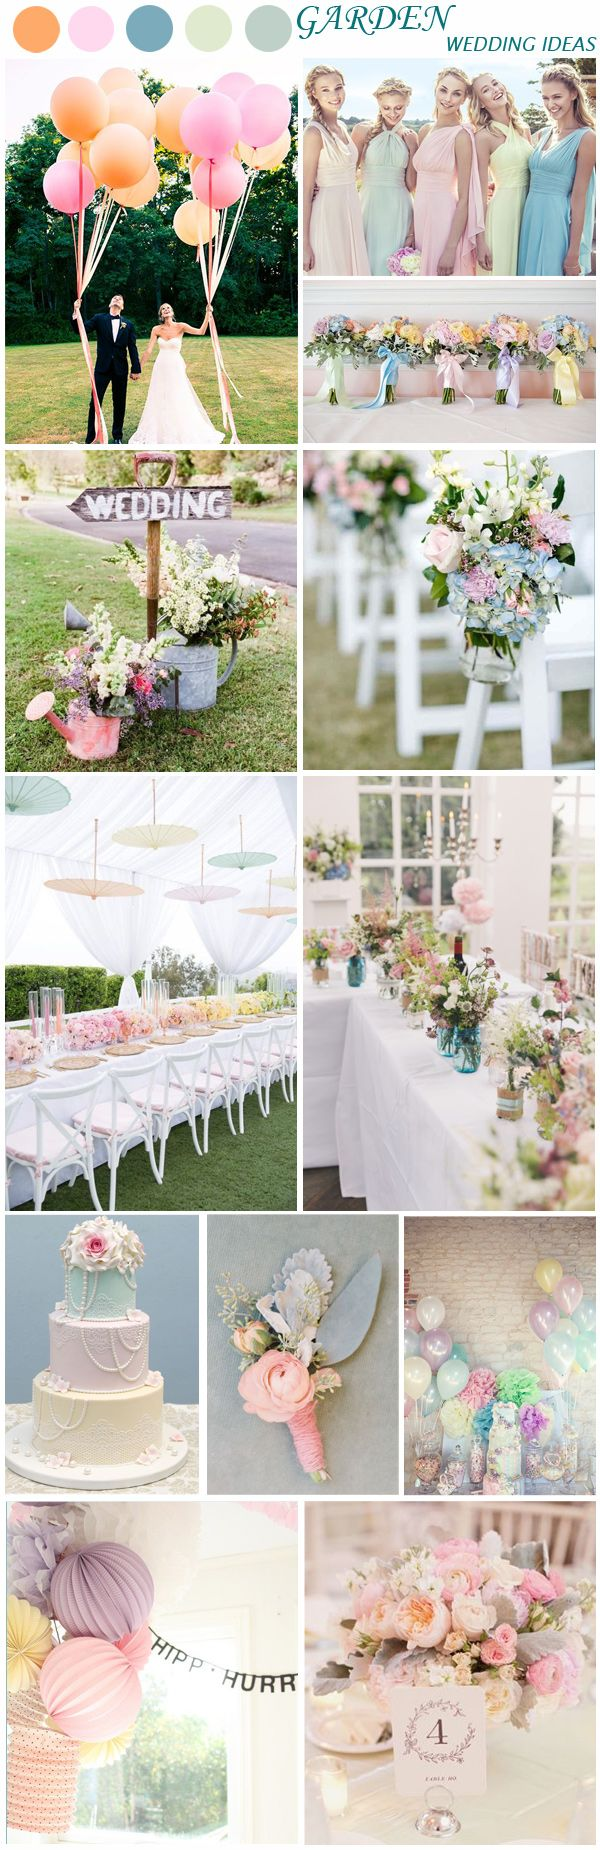 78 best Wedding Ideas images on Pinterest | Weddings, Wedding ideas ...